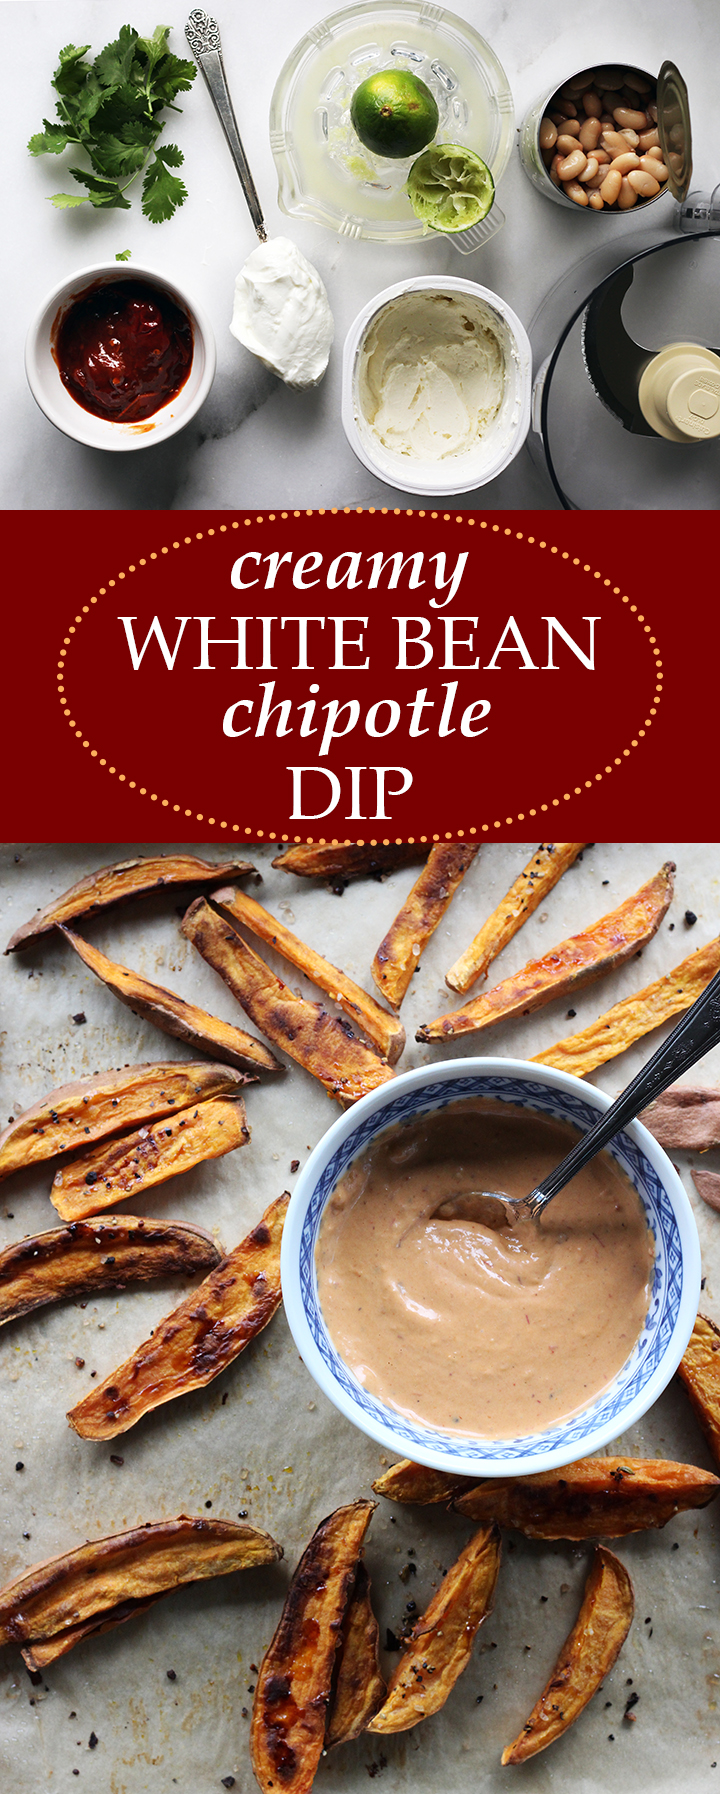 Sweet Potato Fries with Creamy White Bean Chipotle Dip | www.thetableofcontents.co